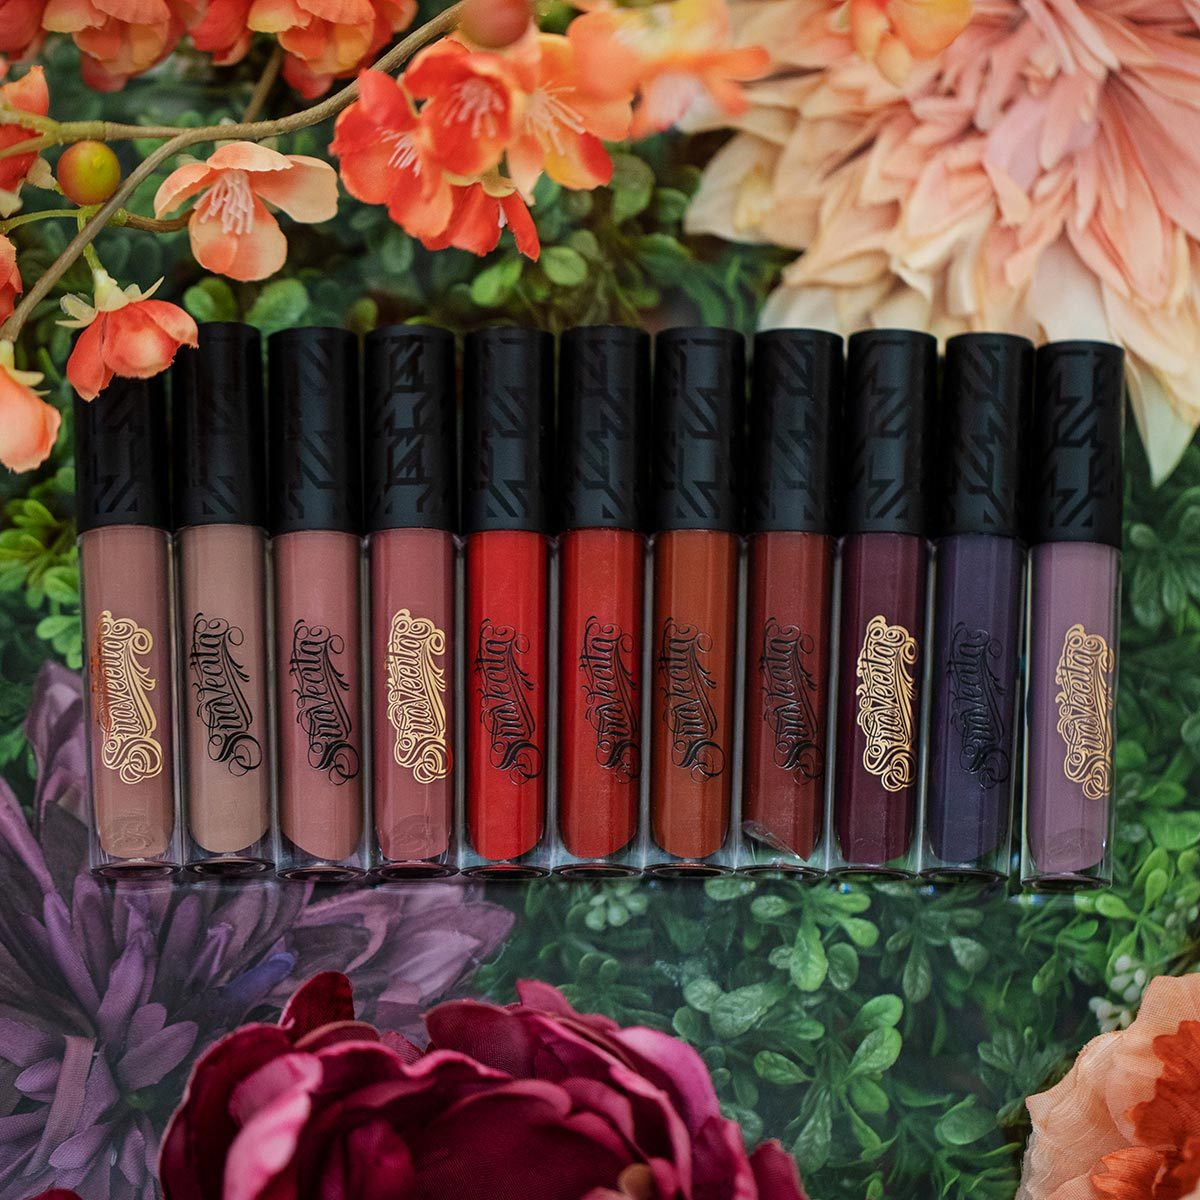 Suavecita Lip Grip Collection